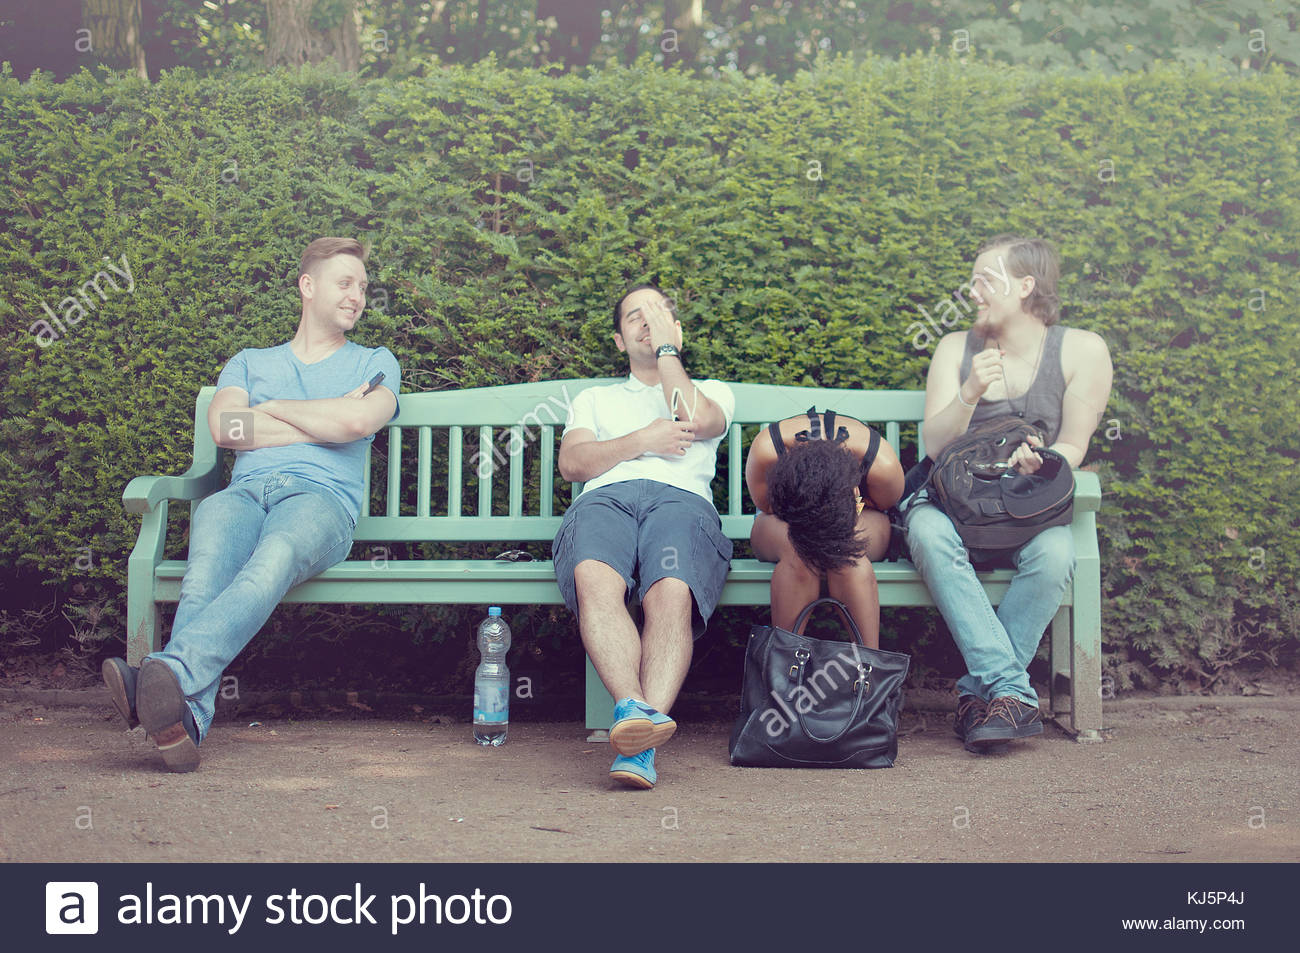 Group of happy friends on a bench laughing - Stock Image